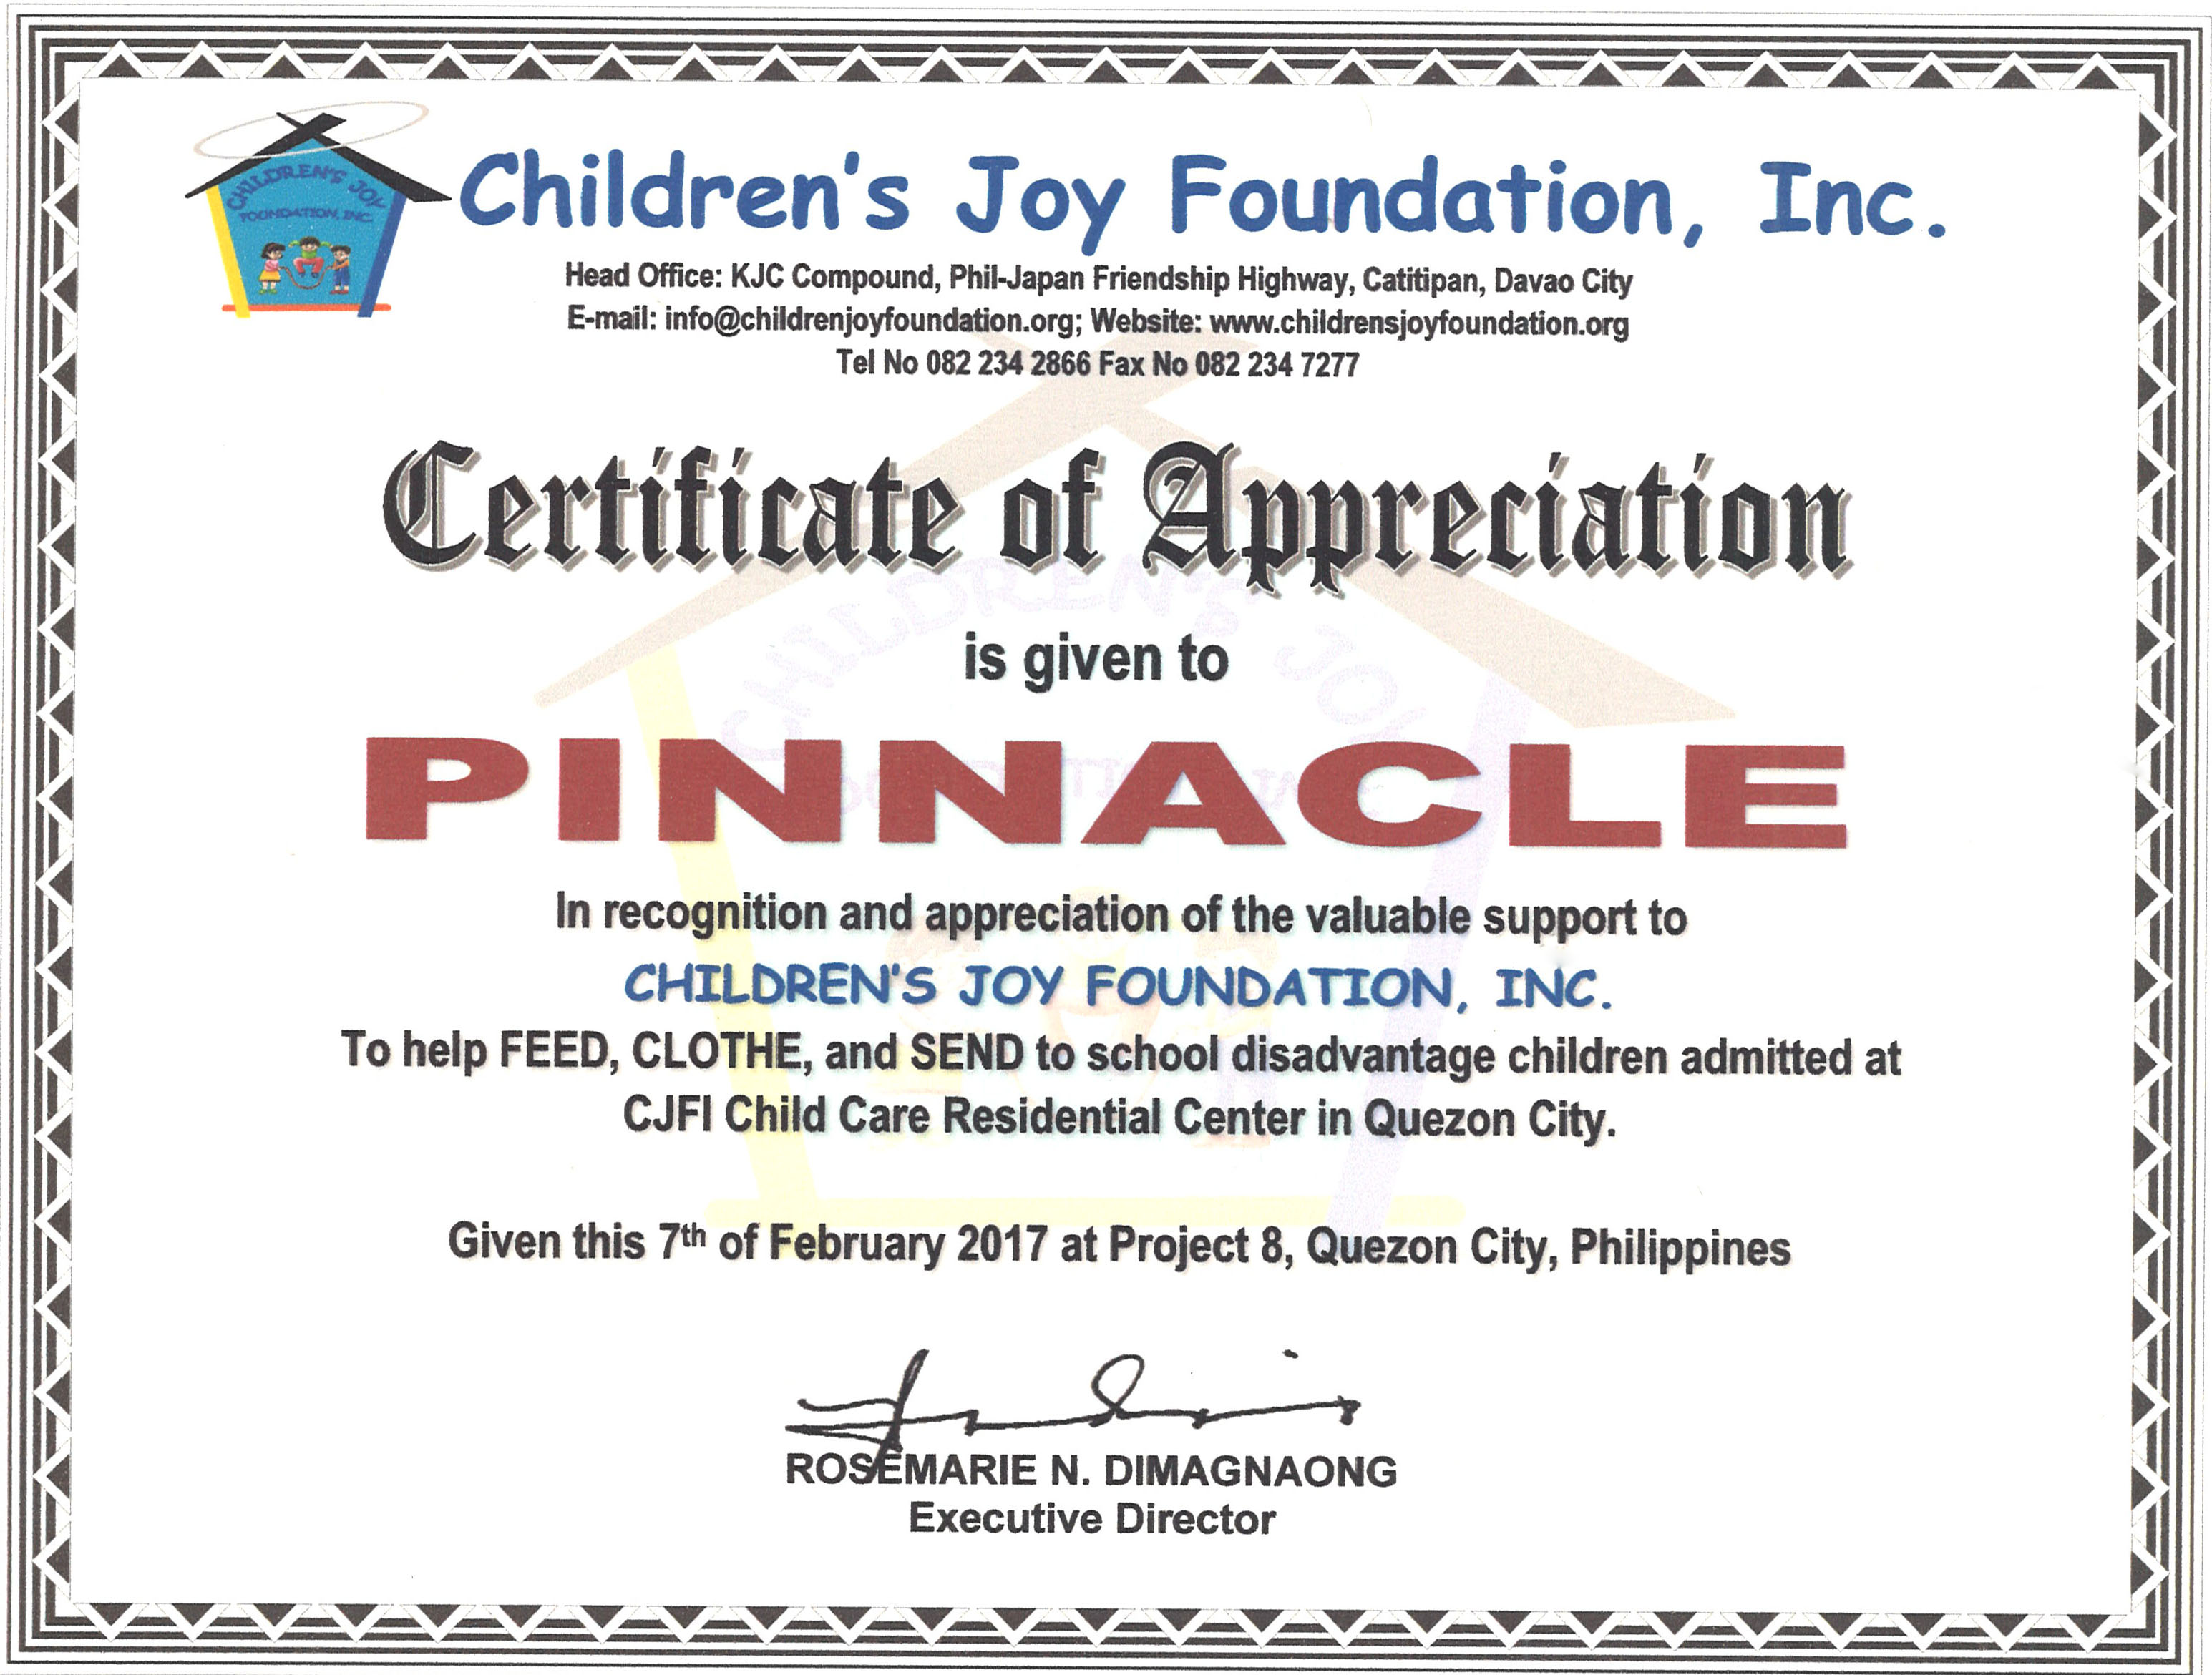 Certificate of appreciation from childrens joy foundation a certificate of appreciation is given to pinnacle in recognition and appreciation of the valuable support to childrens joy foundation inc yelopaper Gallery